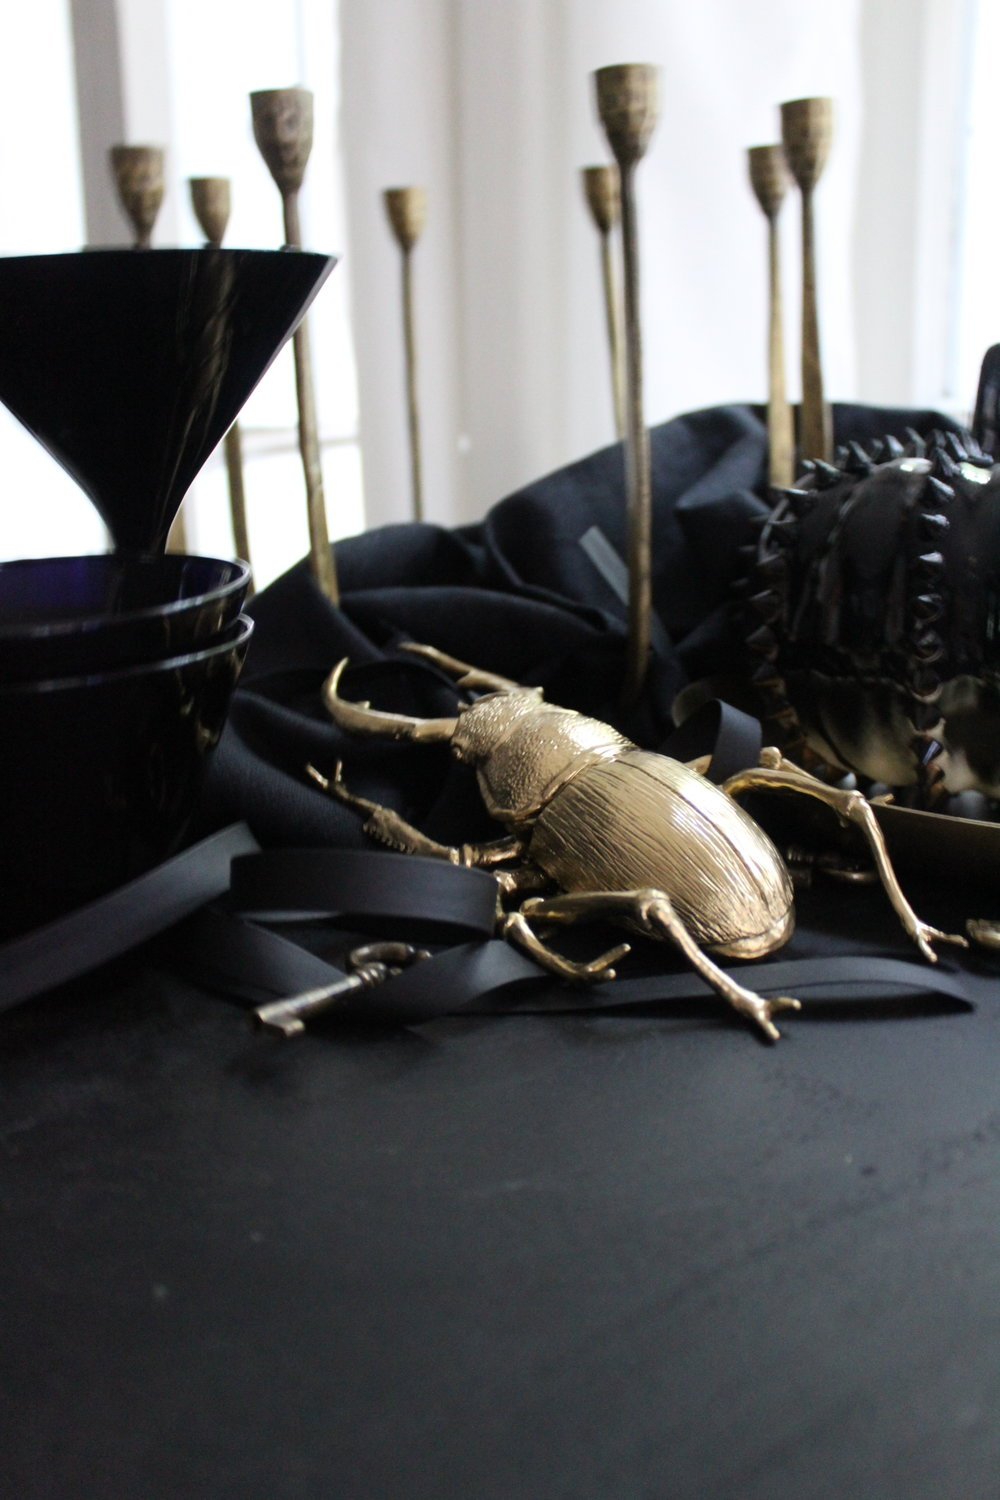 CREEPY CRAWLERS...break out the spray paint again and gild your beetles and bugs! Place the smaller sized in inconspicuous places for your guests to find throughout the evening.